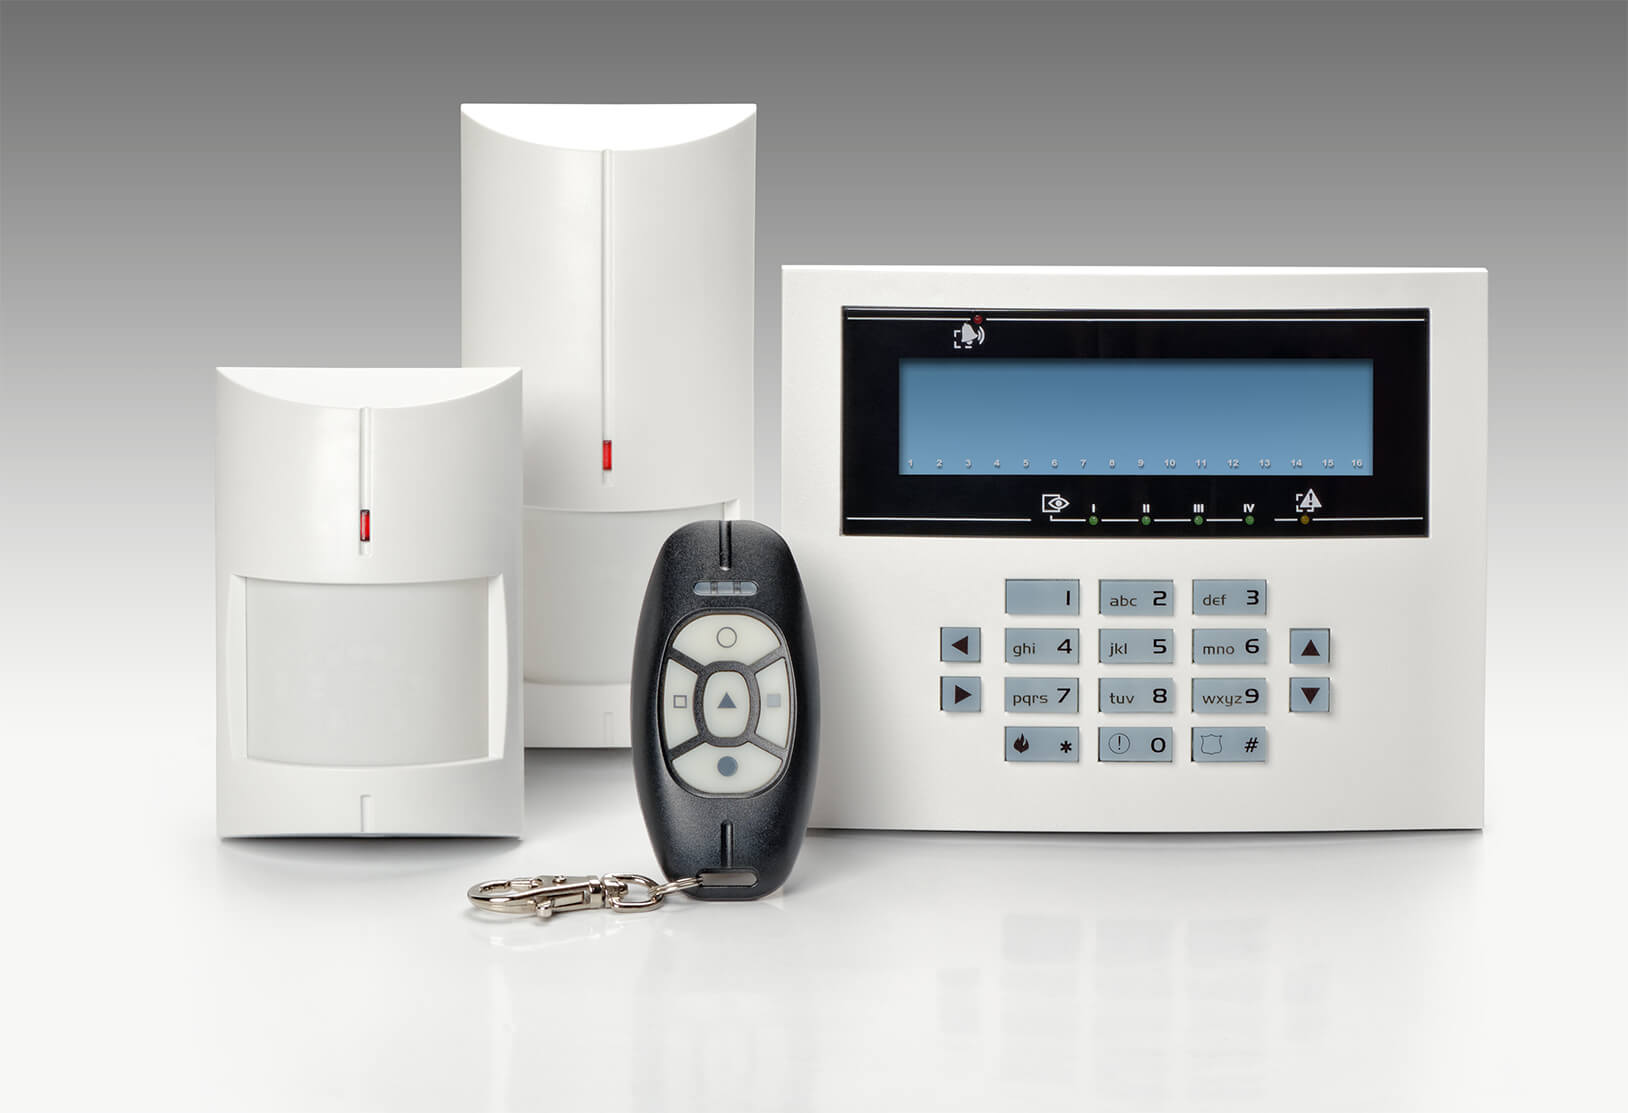 Business & Residential NACOSS Approved Burglar Alarms In Alexandra Palace/Park N22 - Local Alexandra Palace/Park N22 security company.Call 02078872244 - Dedicated to Safety & Security. Companies, shops and homes ..